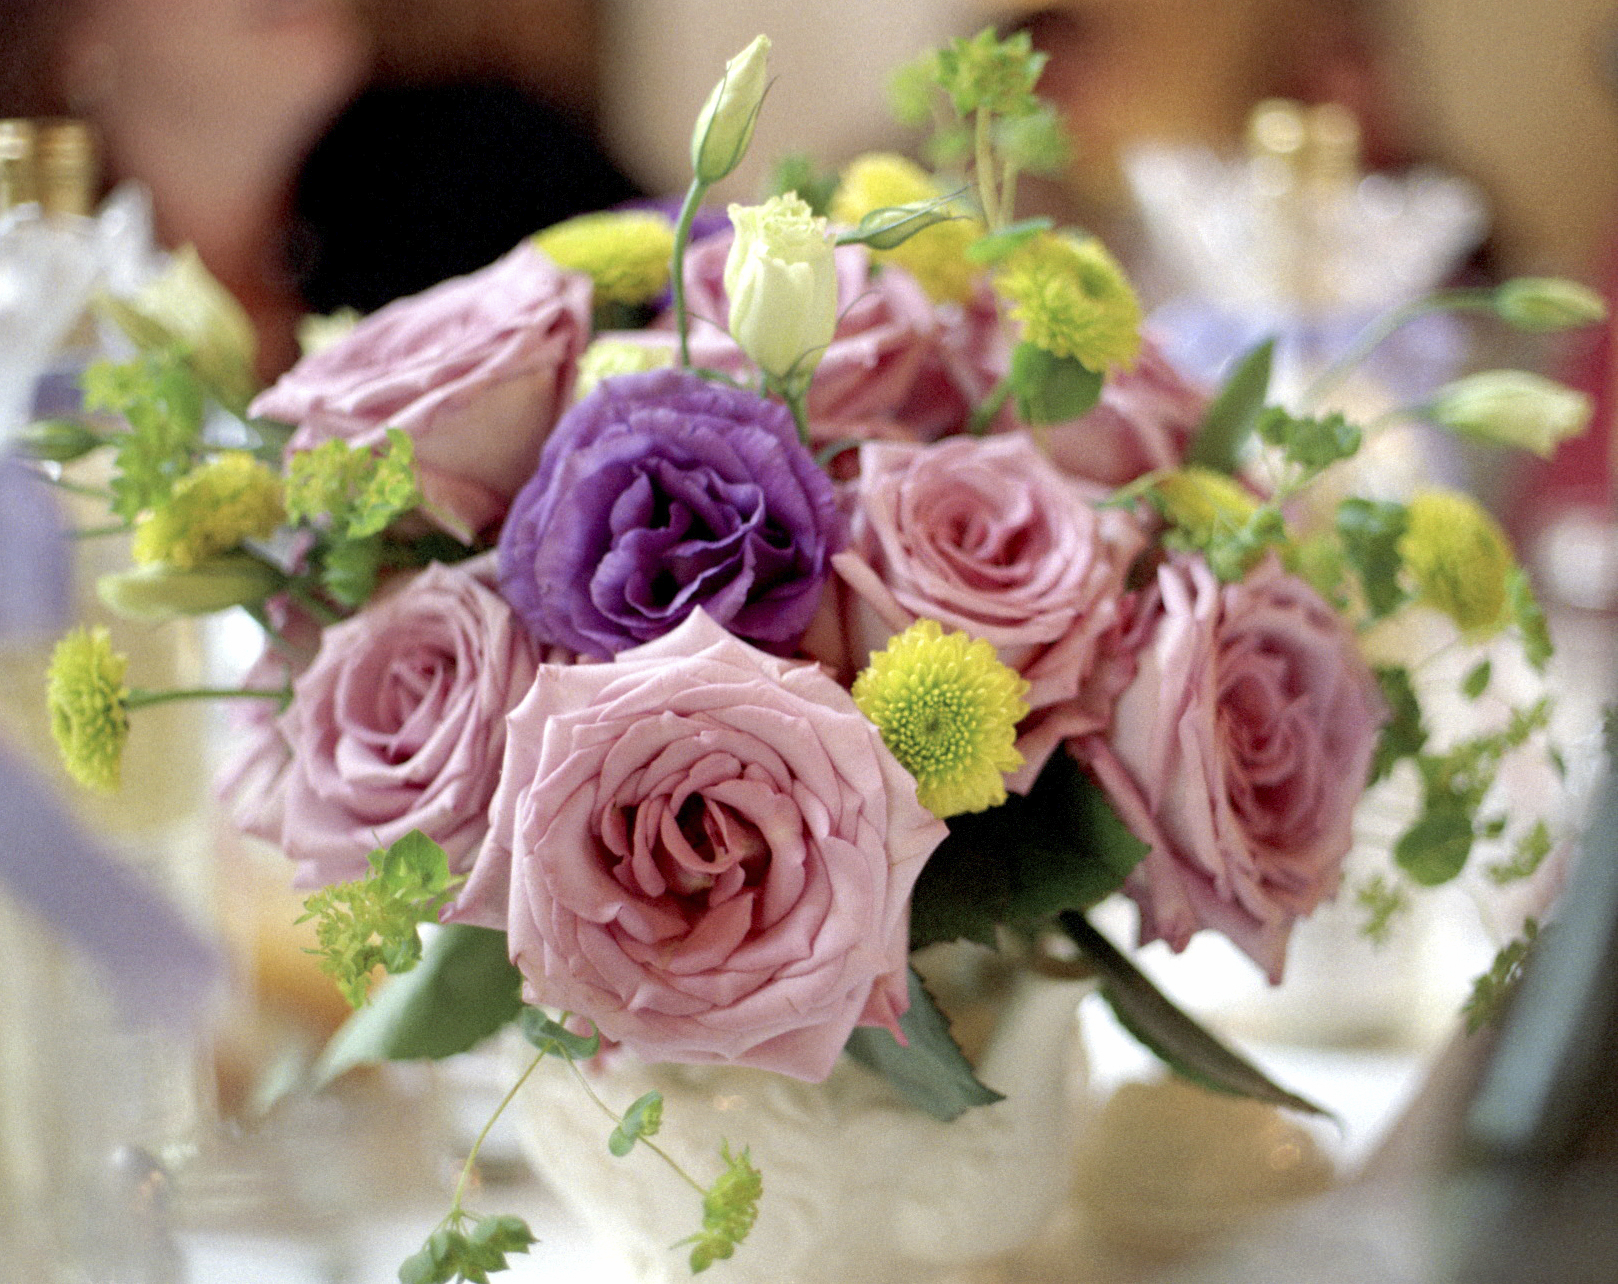 bouquet on table pick roses istock.jpg